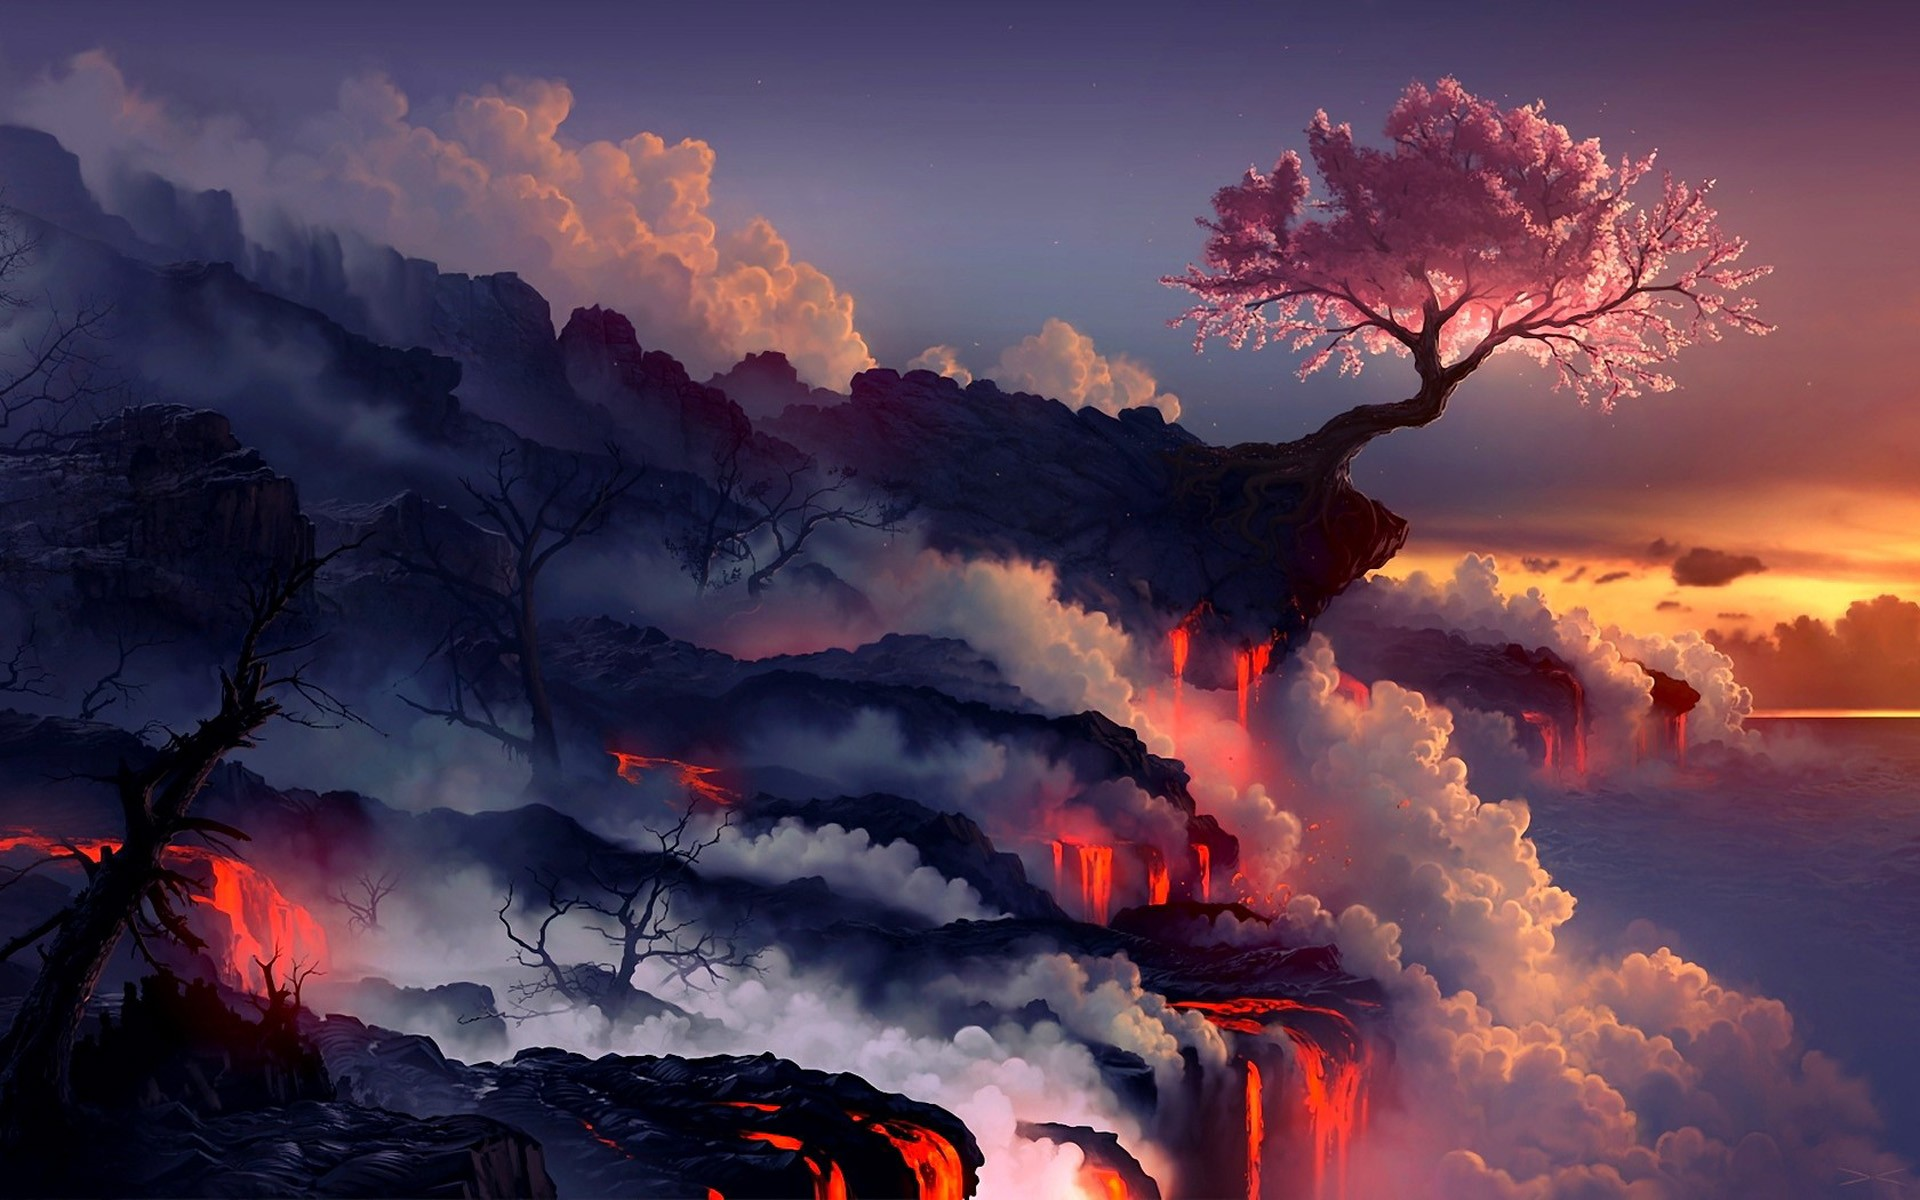 Landscapes cherry blossoms trees seas lava smoke rocks artwork